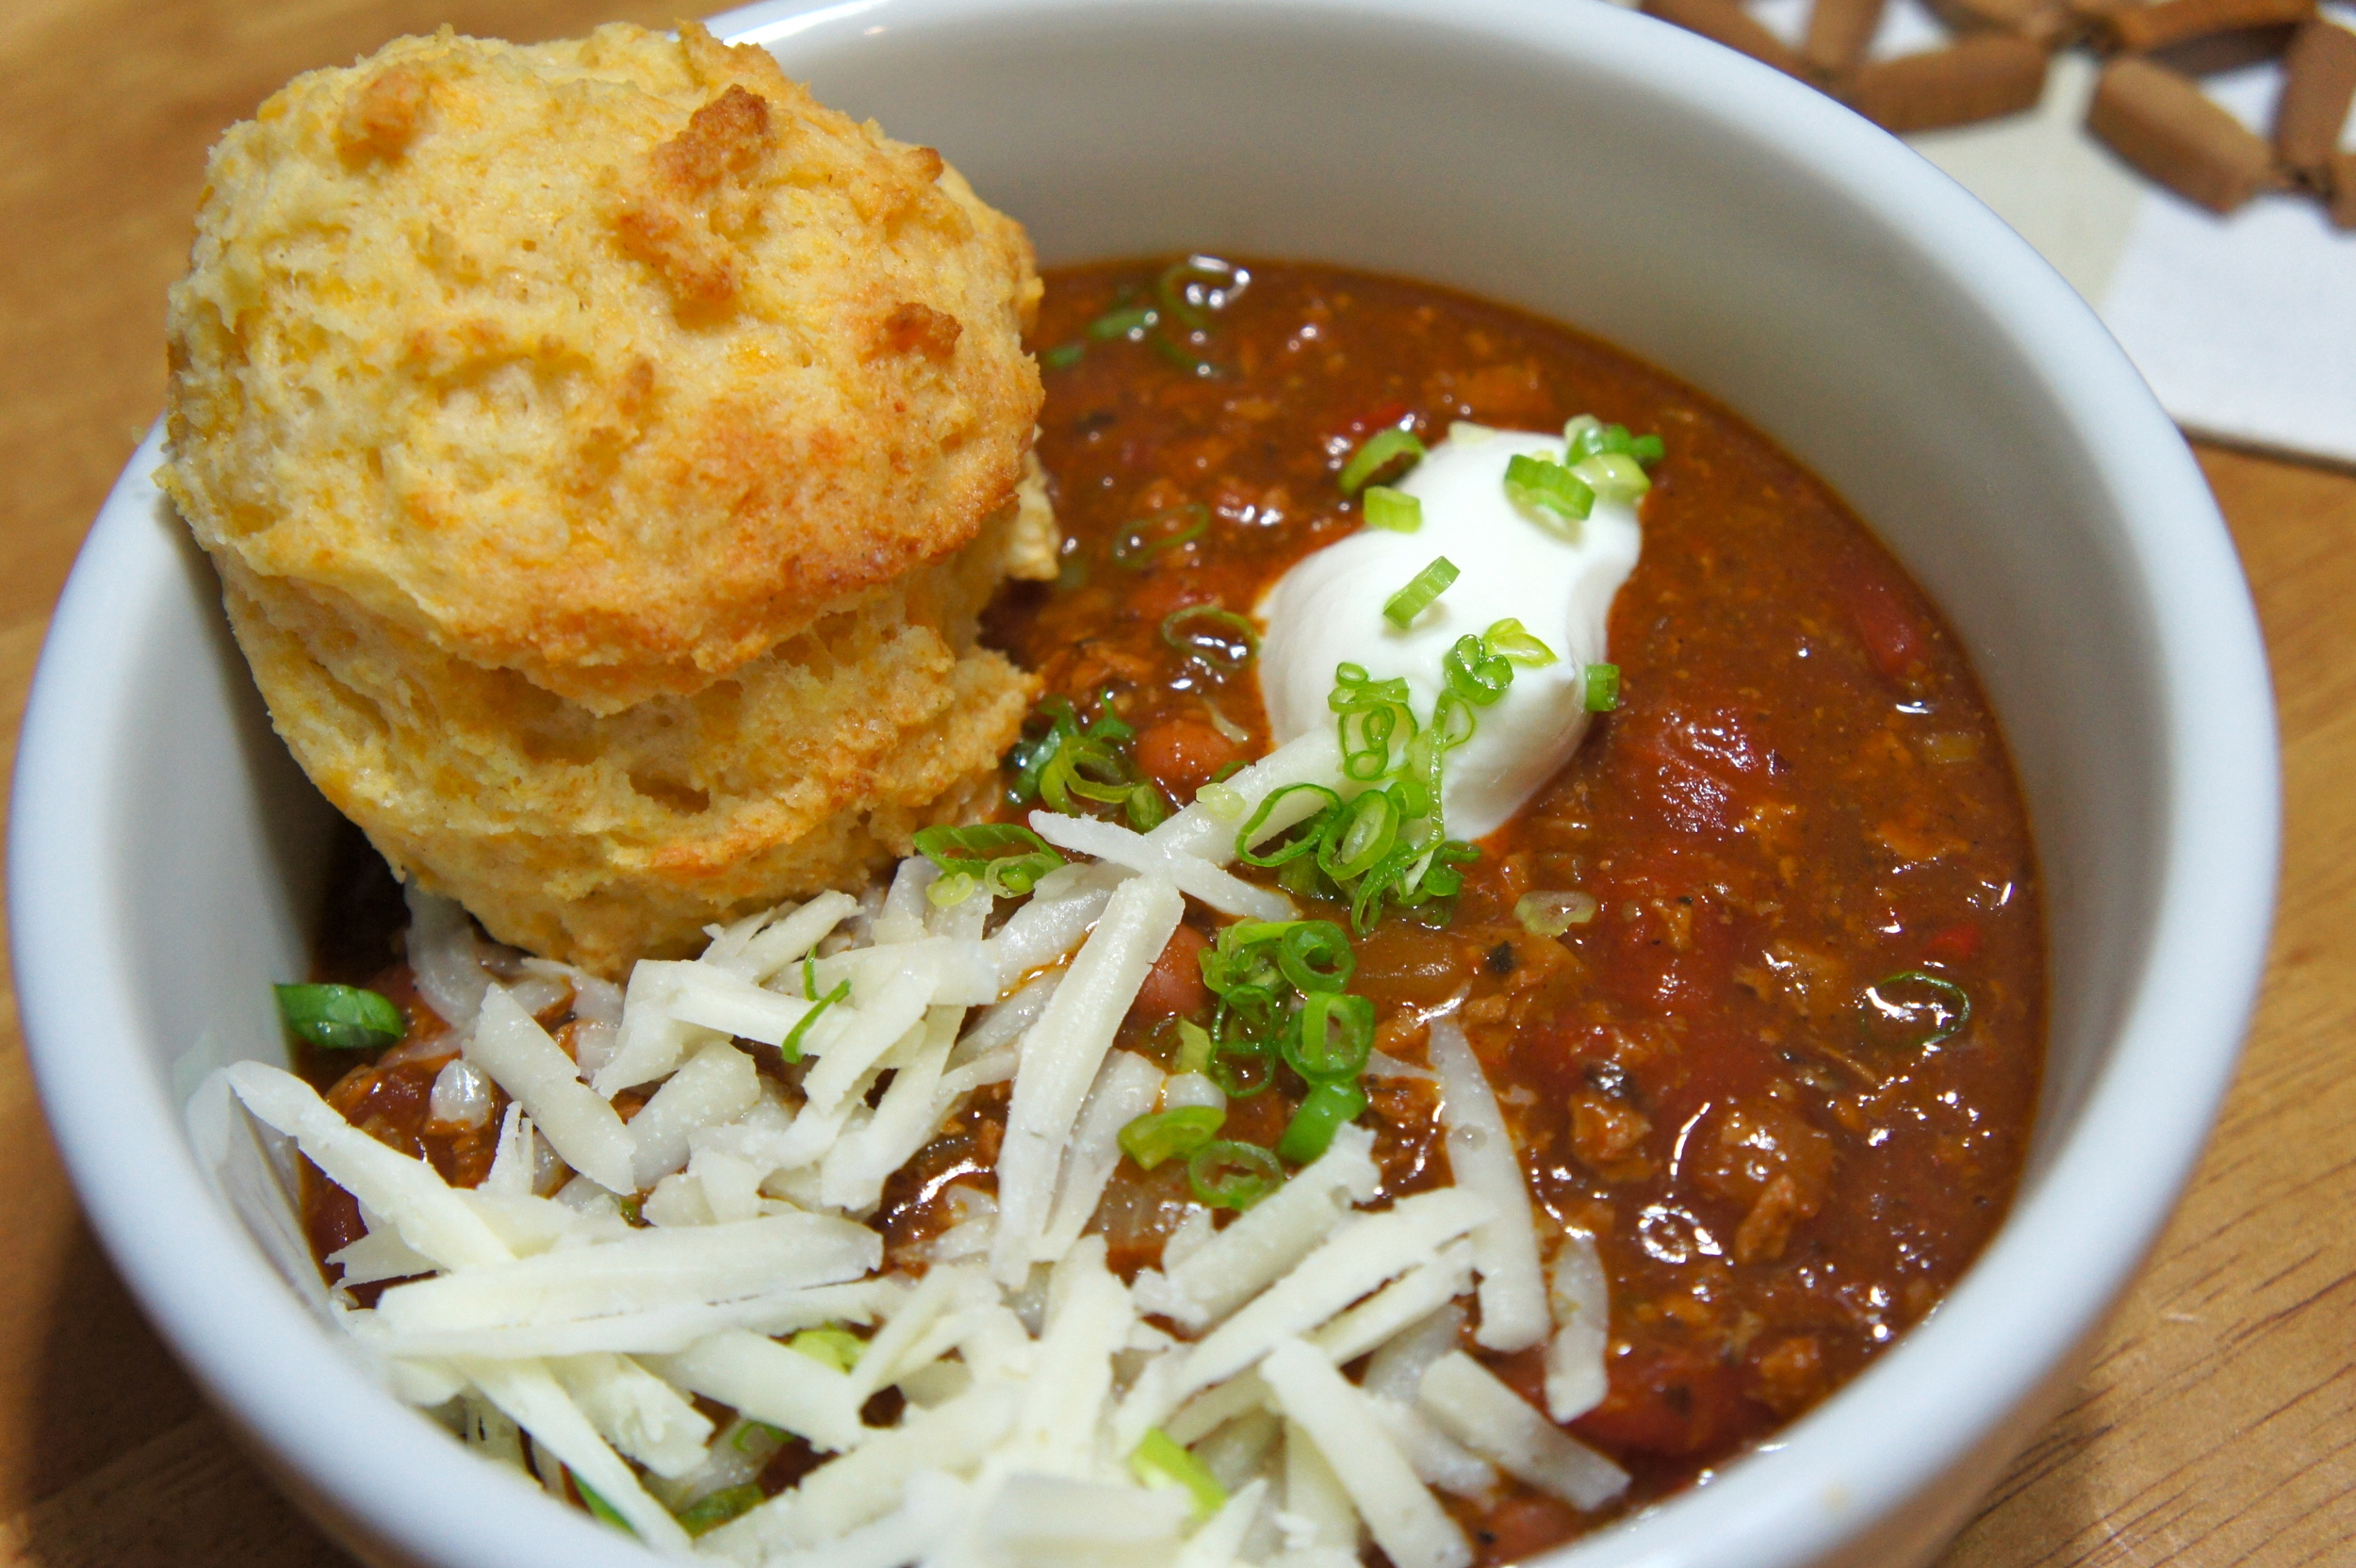 Meaty Vegetarian Chili with Cheddar Bay Biscuits